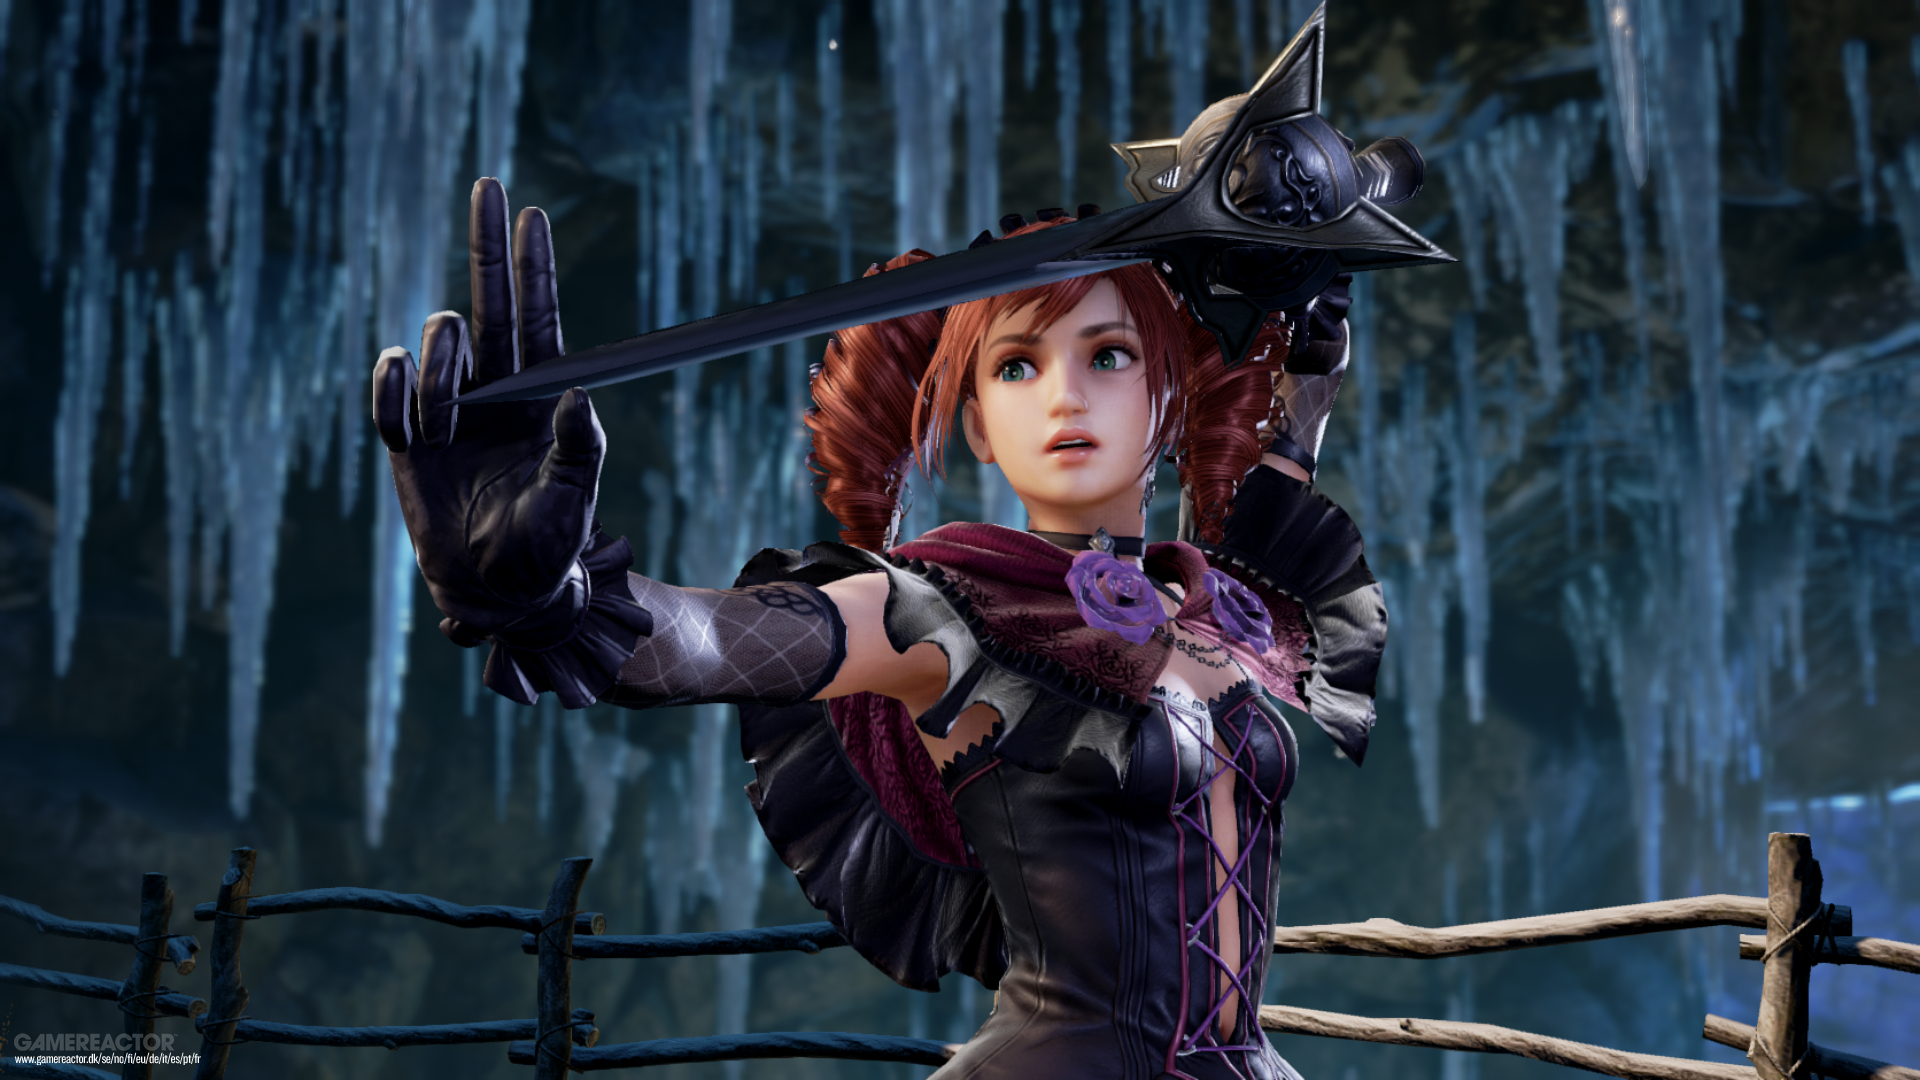 Pictures of New screenshots of Soul Calibur VI DLC character surface 3/6